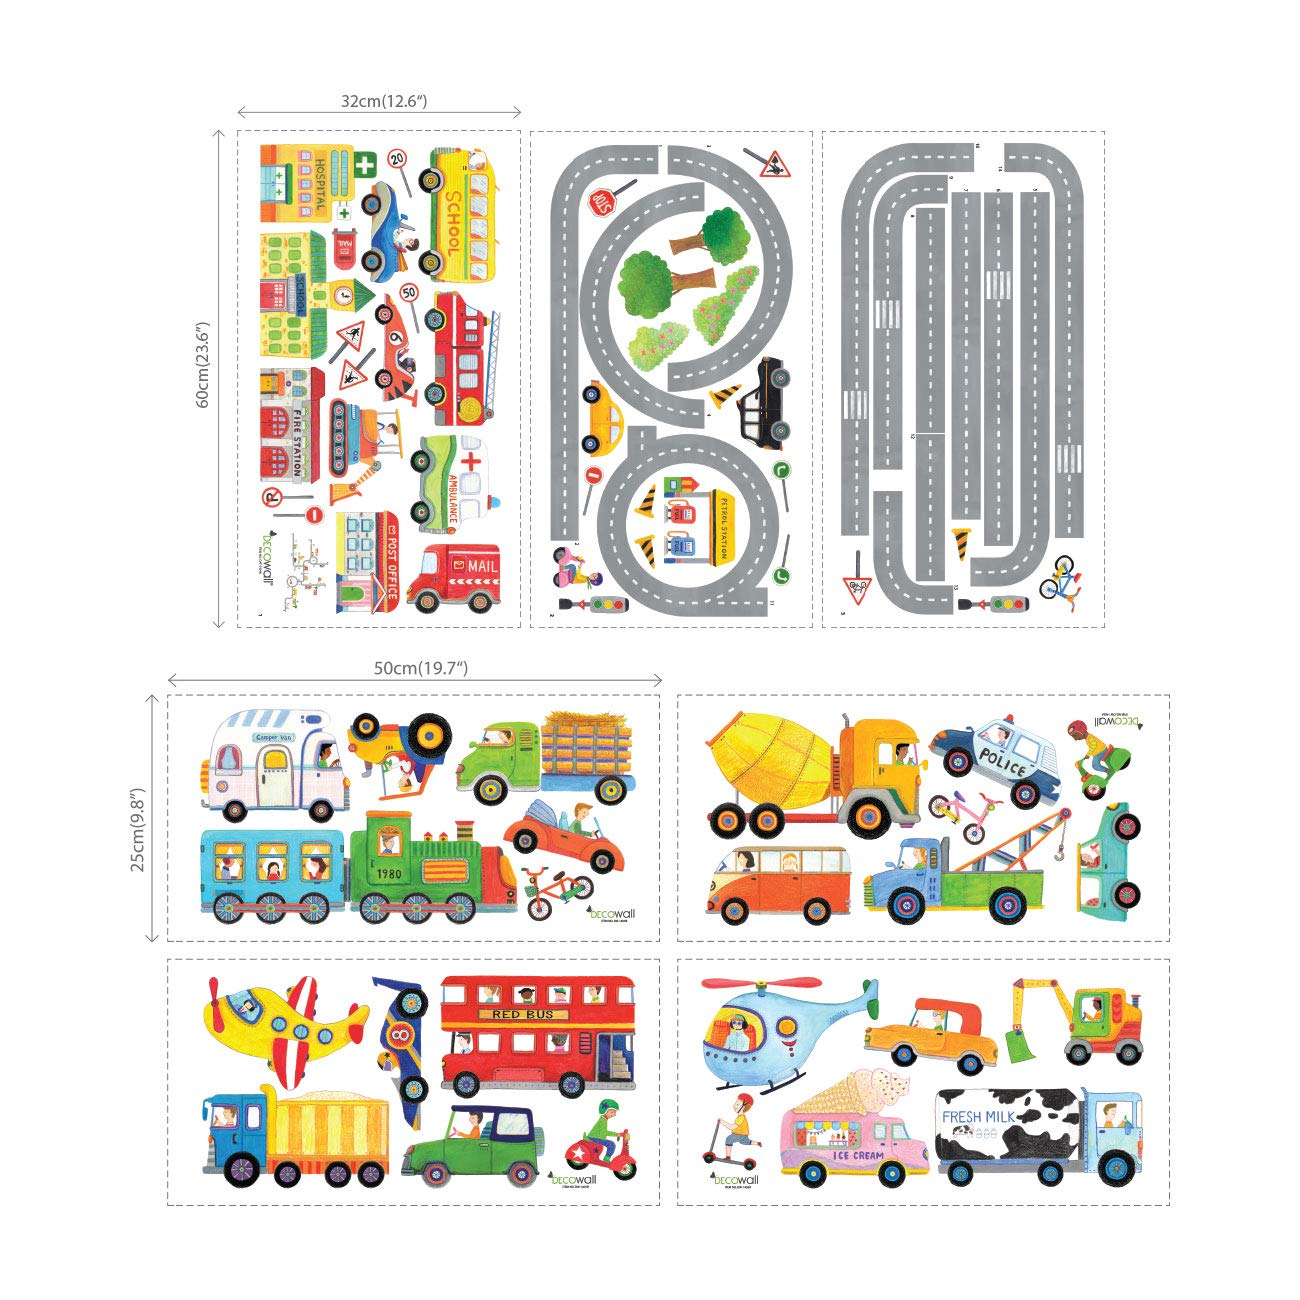 Decowall DAT-1404P1405 The Road and Transports Kids Wall Decals Wall Stickers Peel and Stick Removable Wall Stickers for Kids Nursery Bedroom Living Room by Decowall (Image #8)